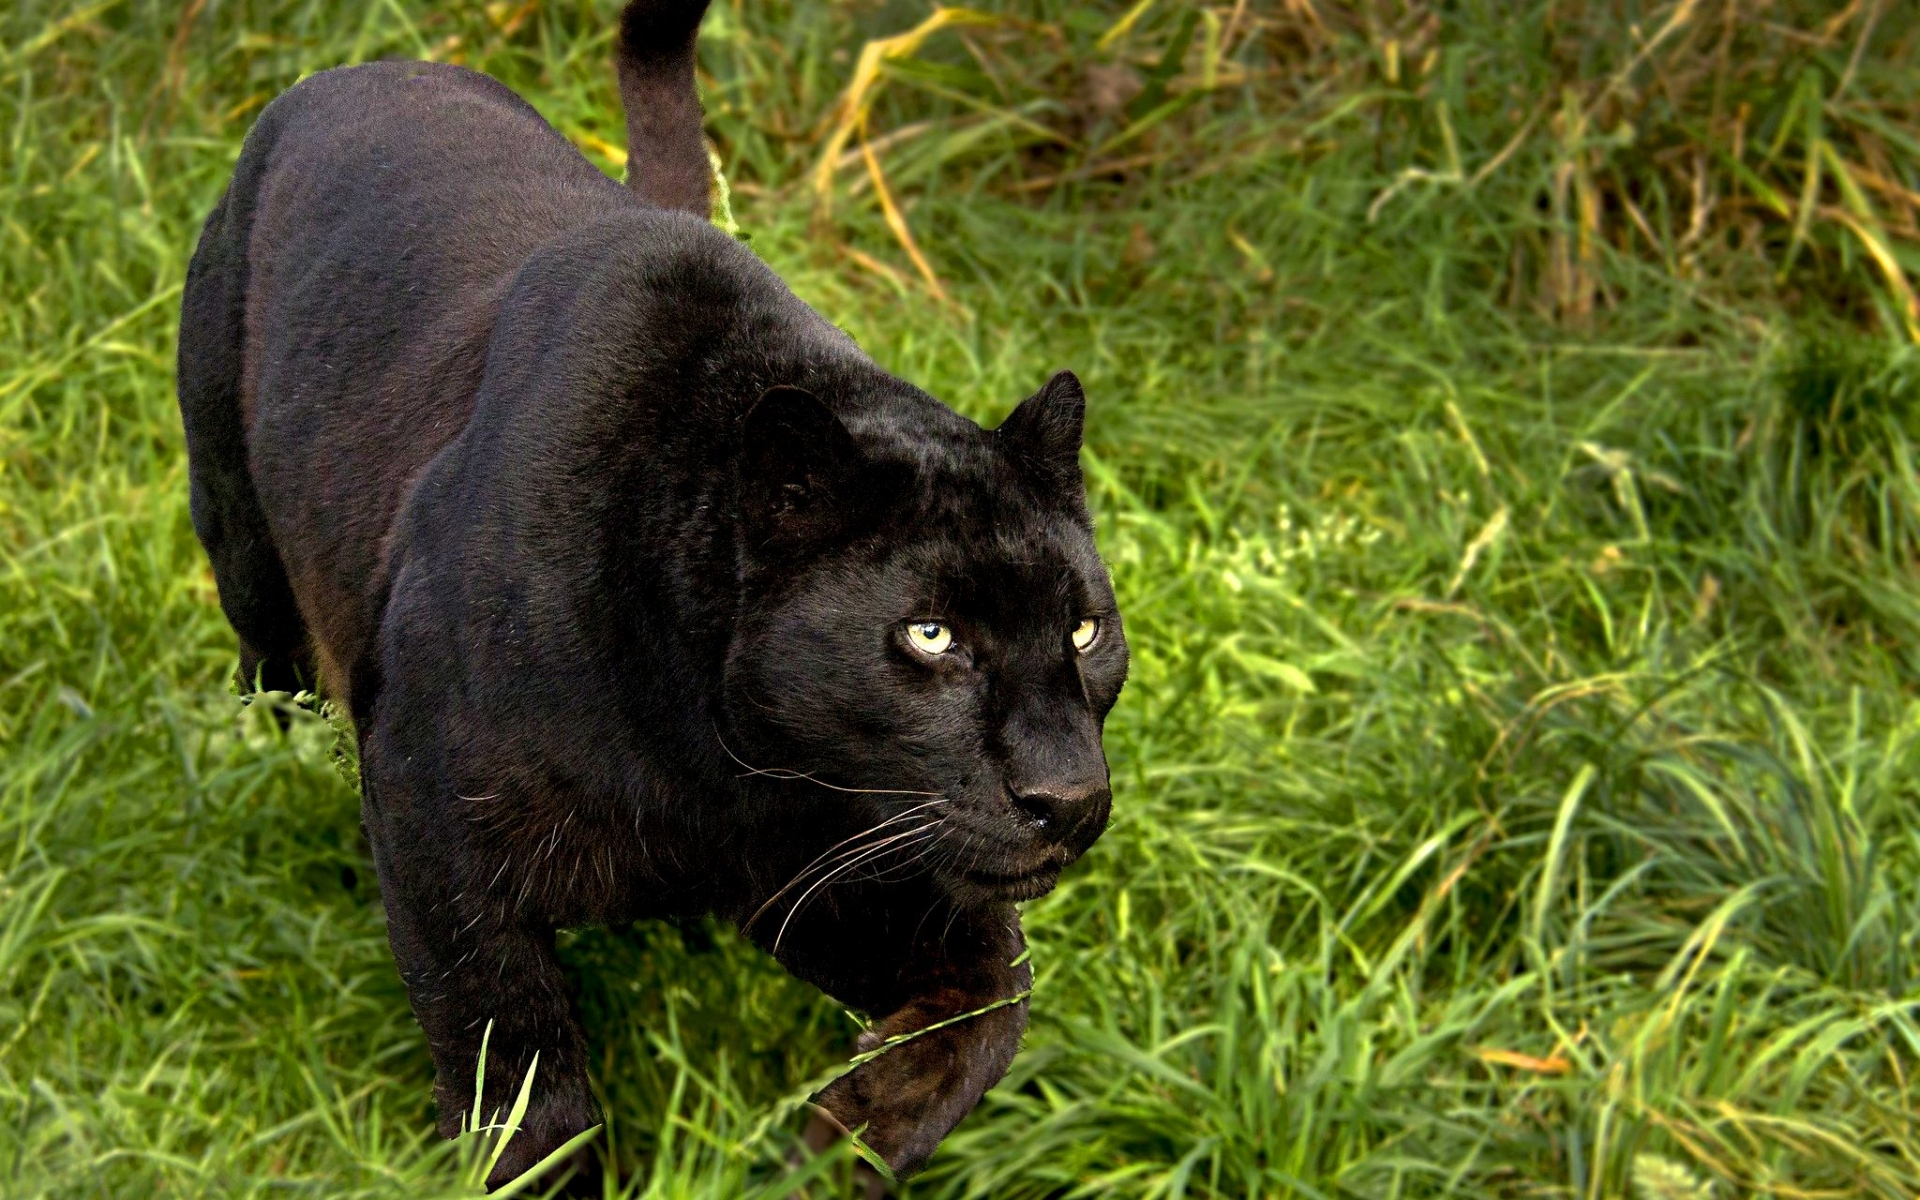 black panther animal wallpapers: Black Panther Full HD Wallpaper And Background